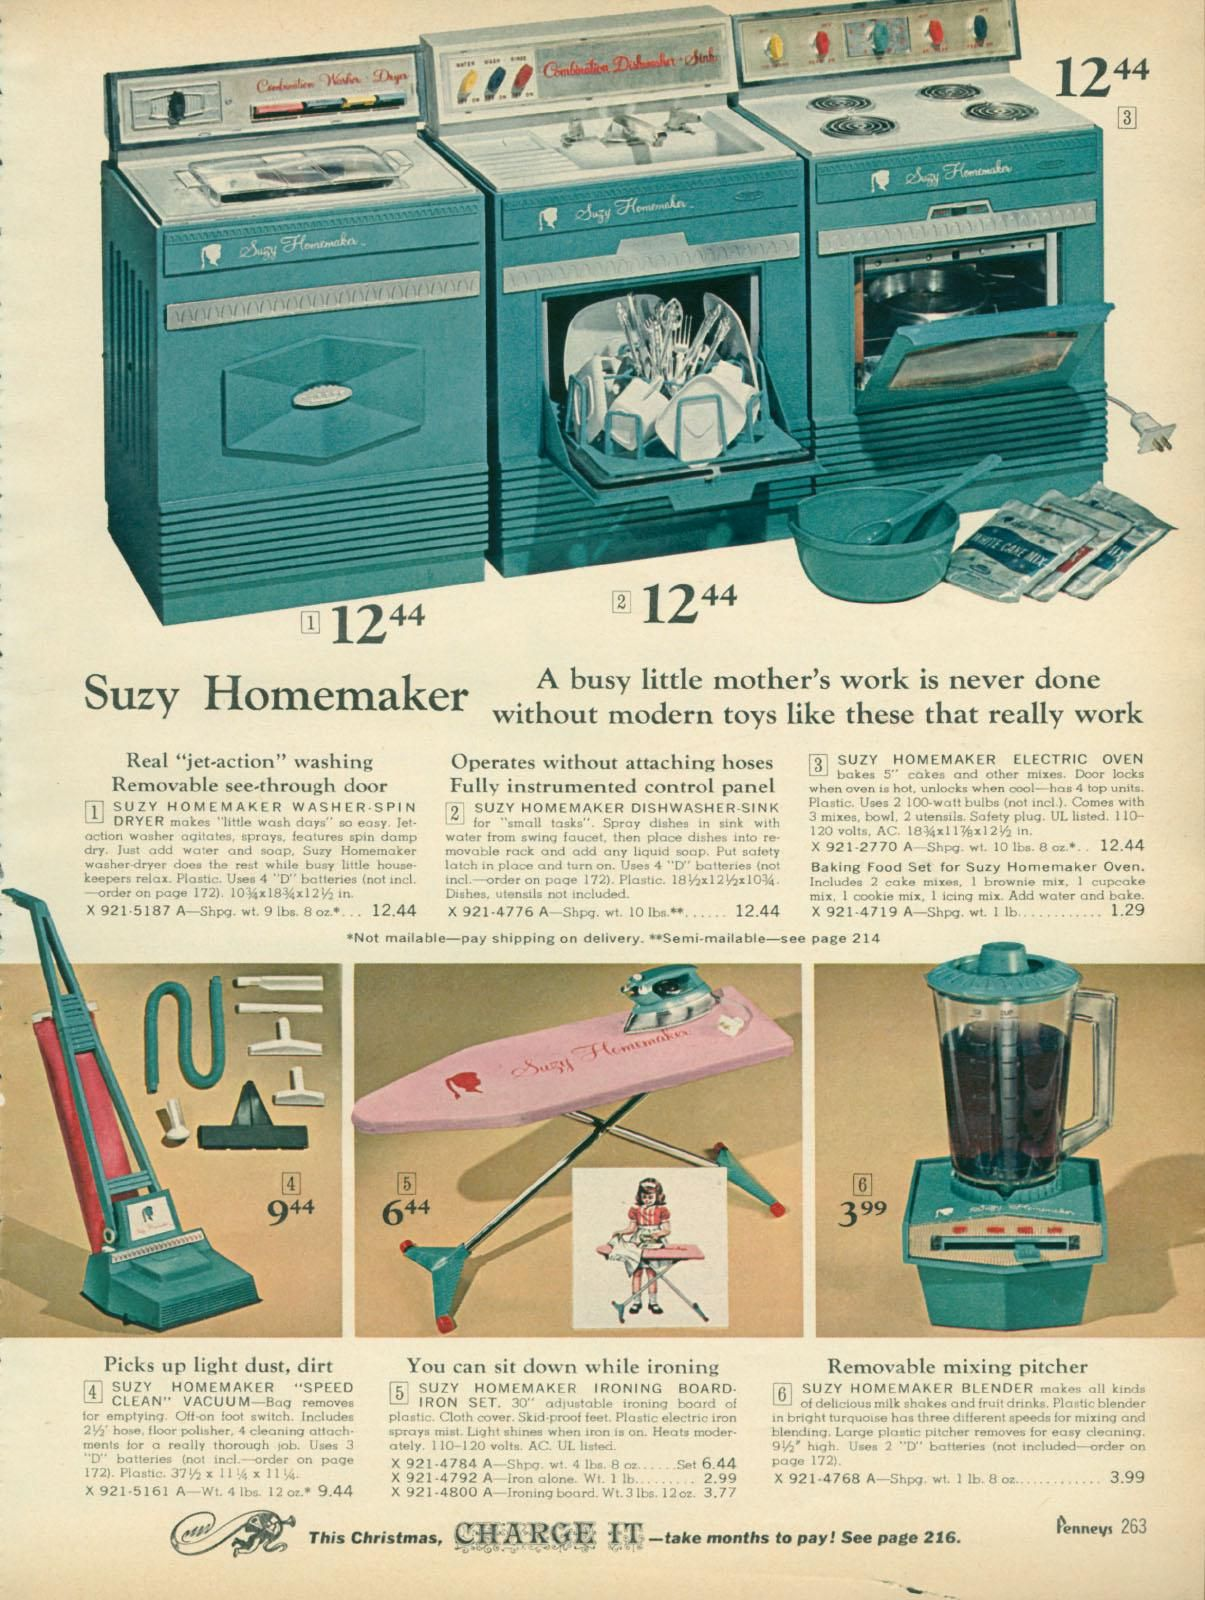 Jcpenney Appliances Kitchen From The 1967 Jcpenney Toy Catalog Full Line Of Suzy Homemaker